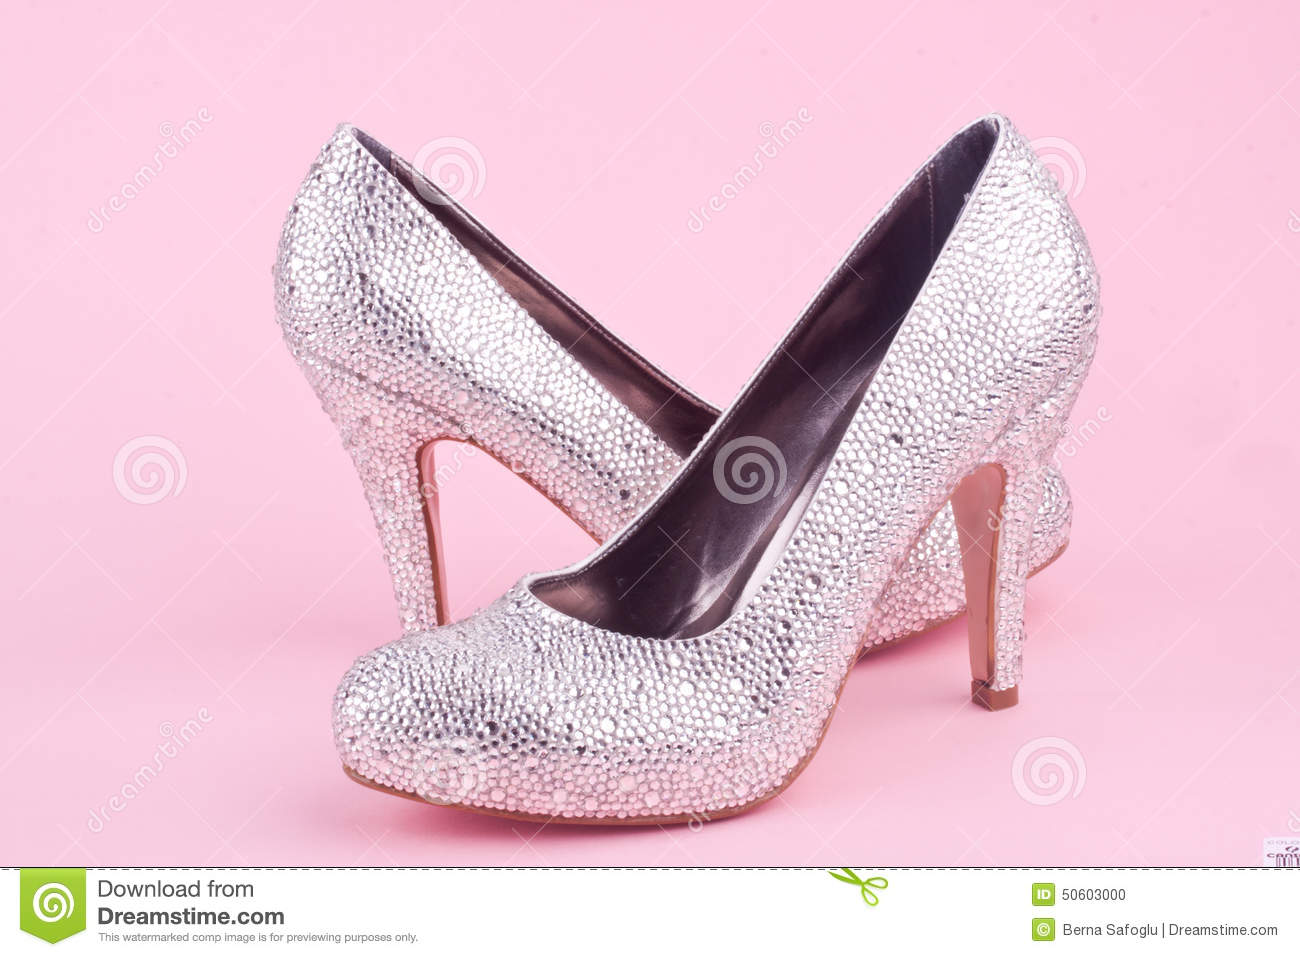 e108a071abfb Shiny High Heel Shoes With Rhinestones Stock Photo - Image of pink ...